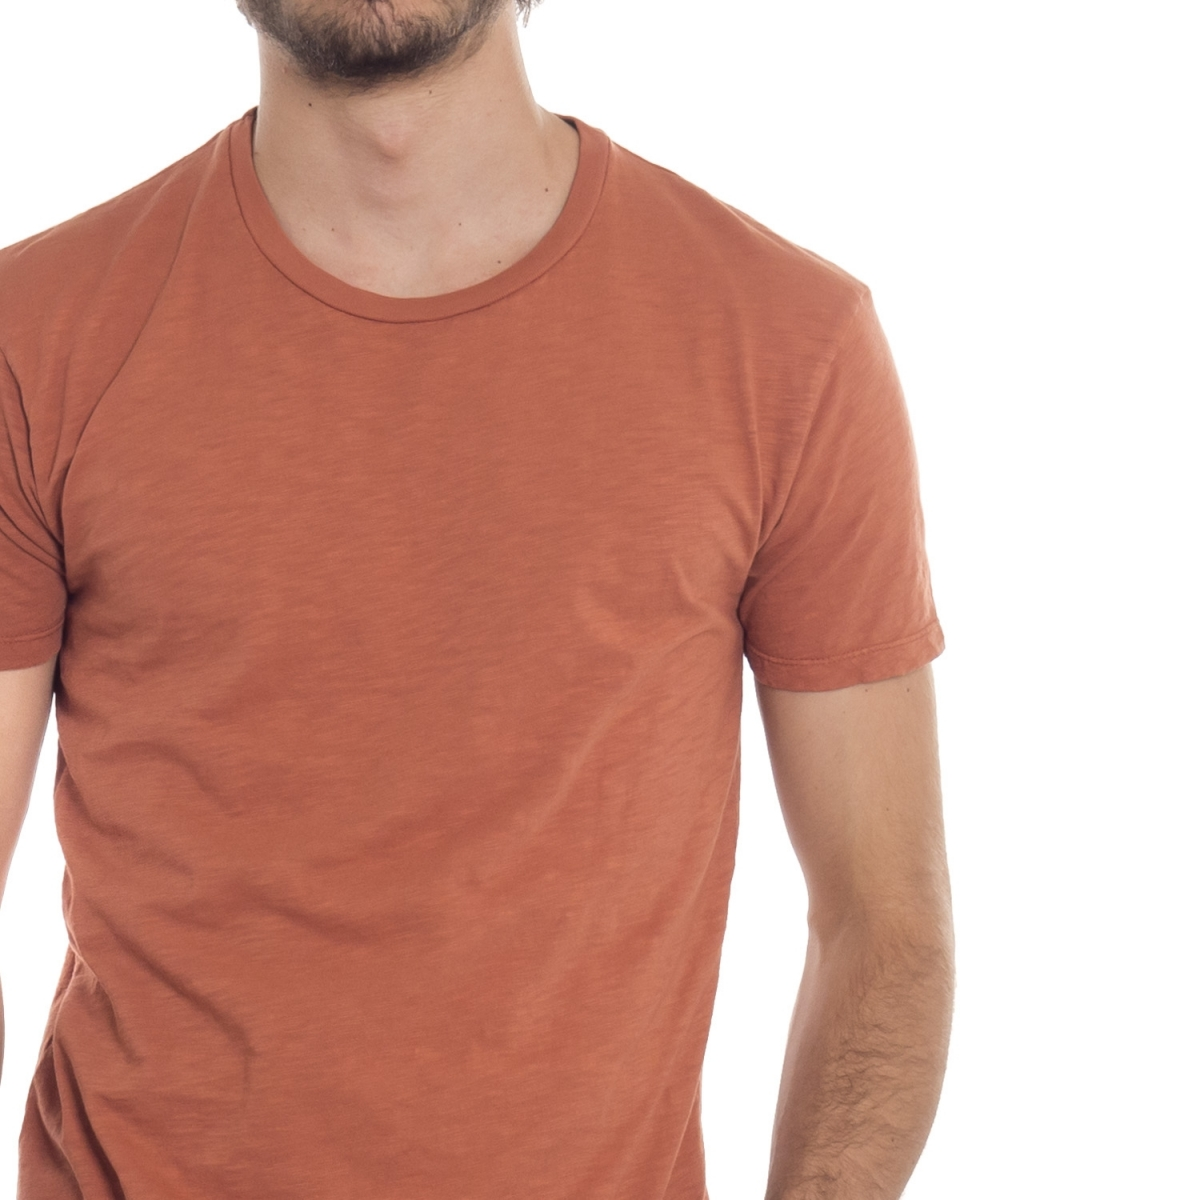 clothing T-shirt men T-Shirt LP23BASIC LANDEK PARK Cafedelmar Shop